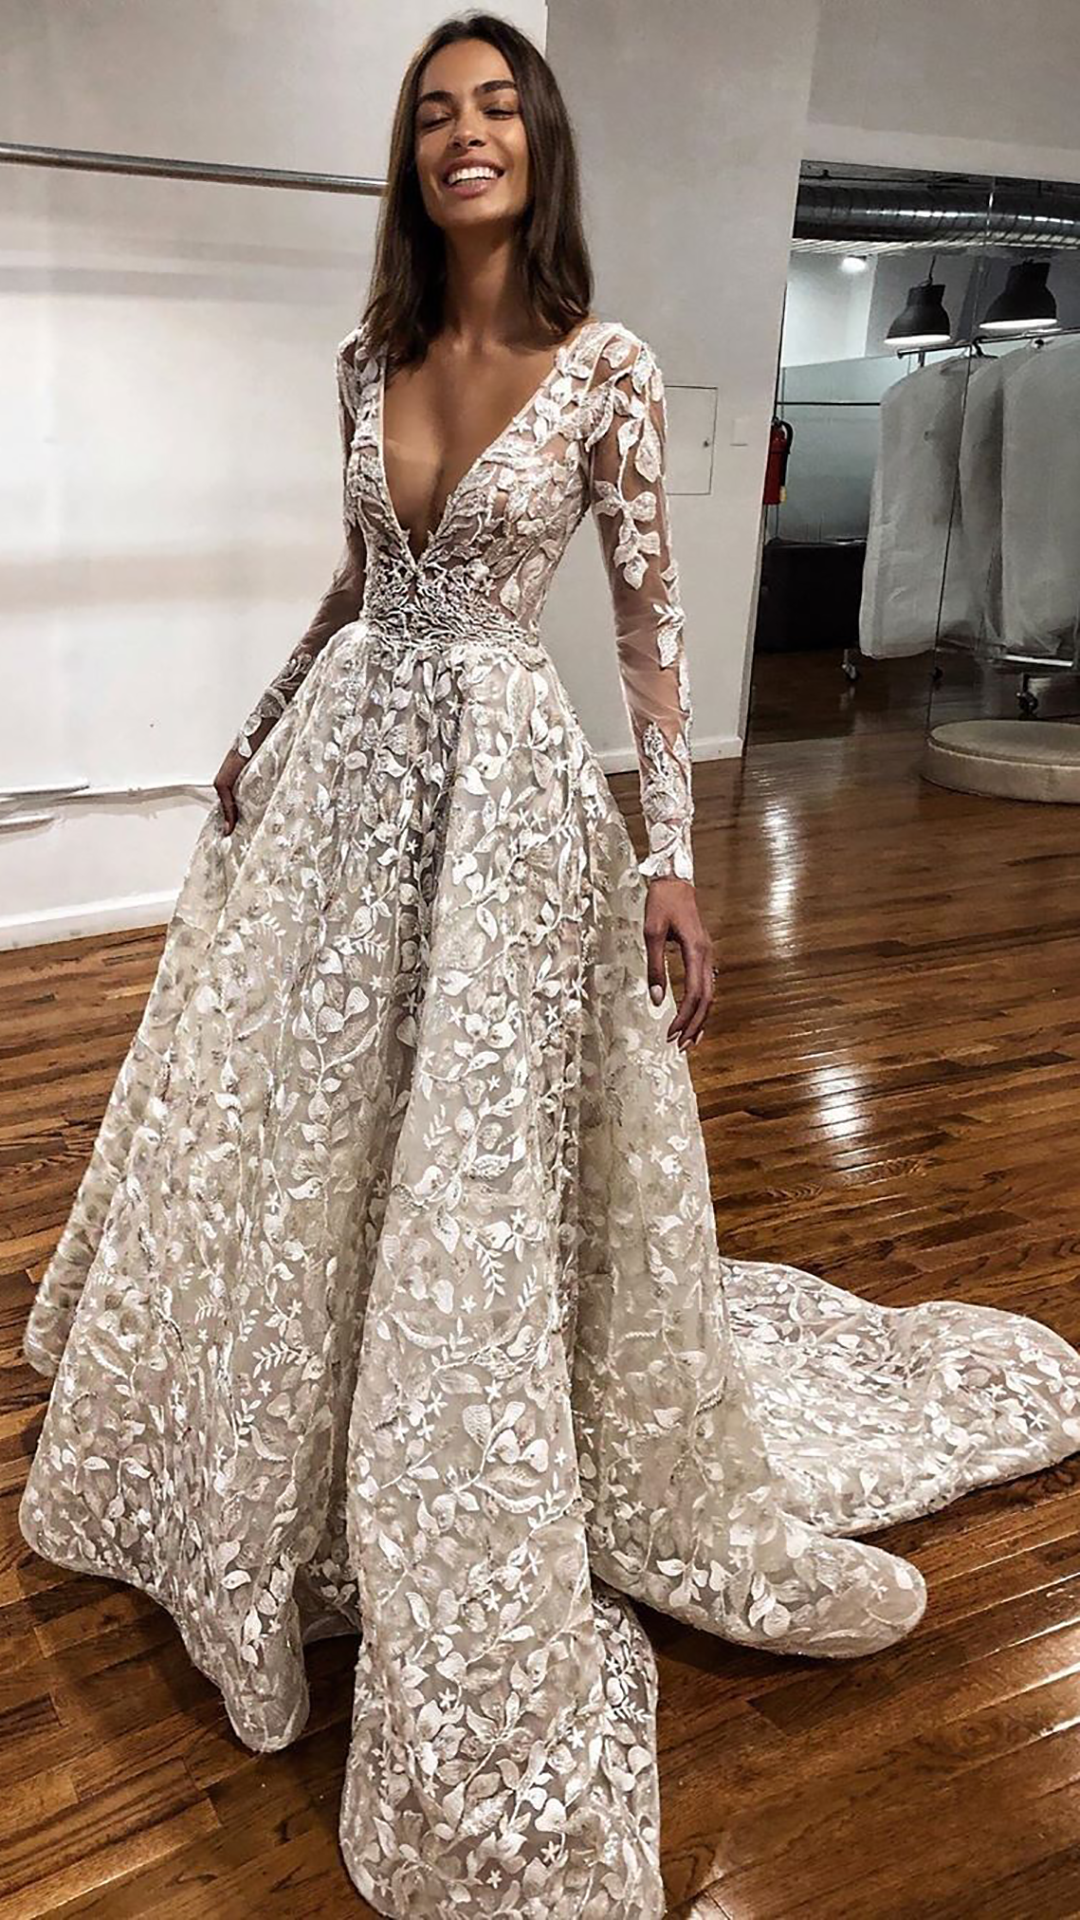 A Line Wedding Dresses 2020 2021 Collections In 2020 Designer Wedding Dresses A Line Wedding Dress Wedding Dresses